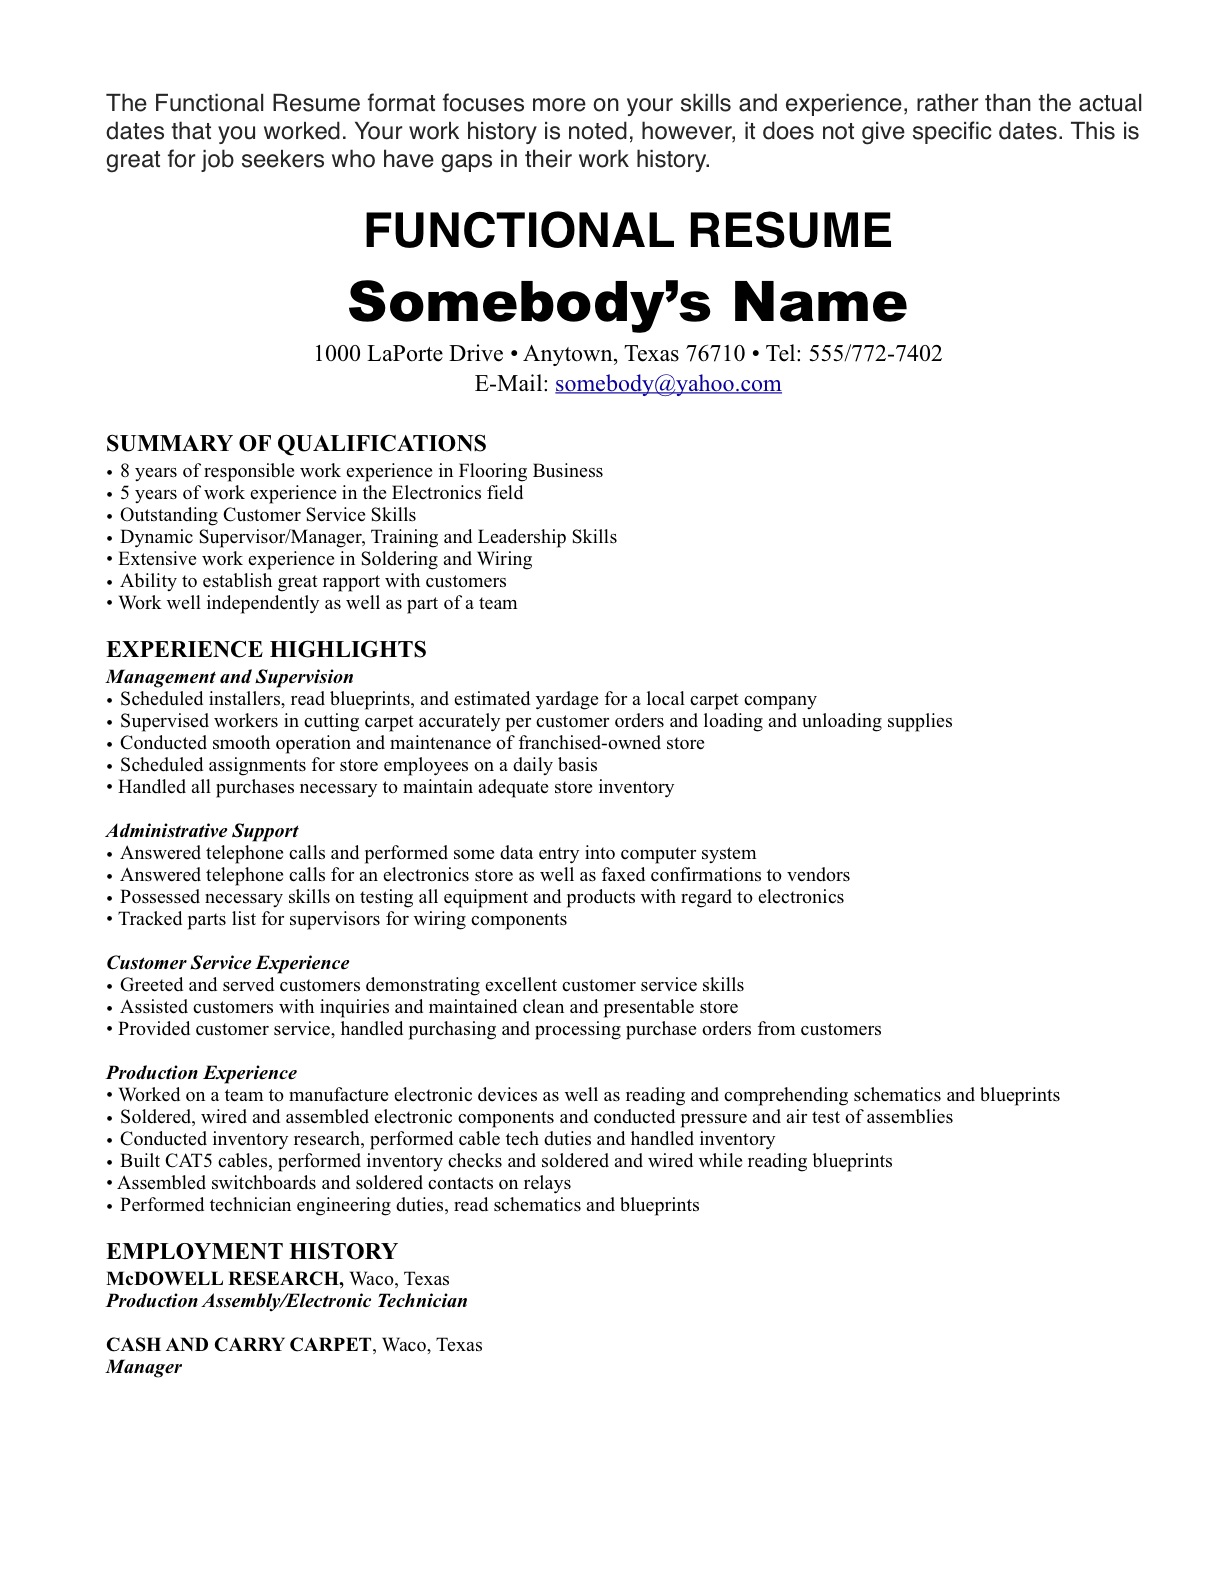 carpet installer job description resume